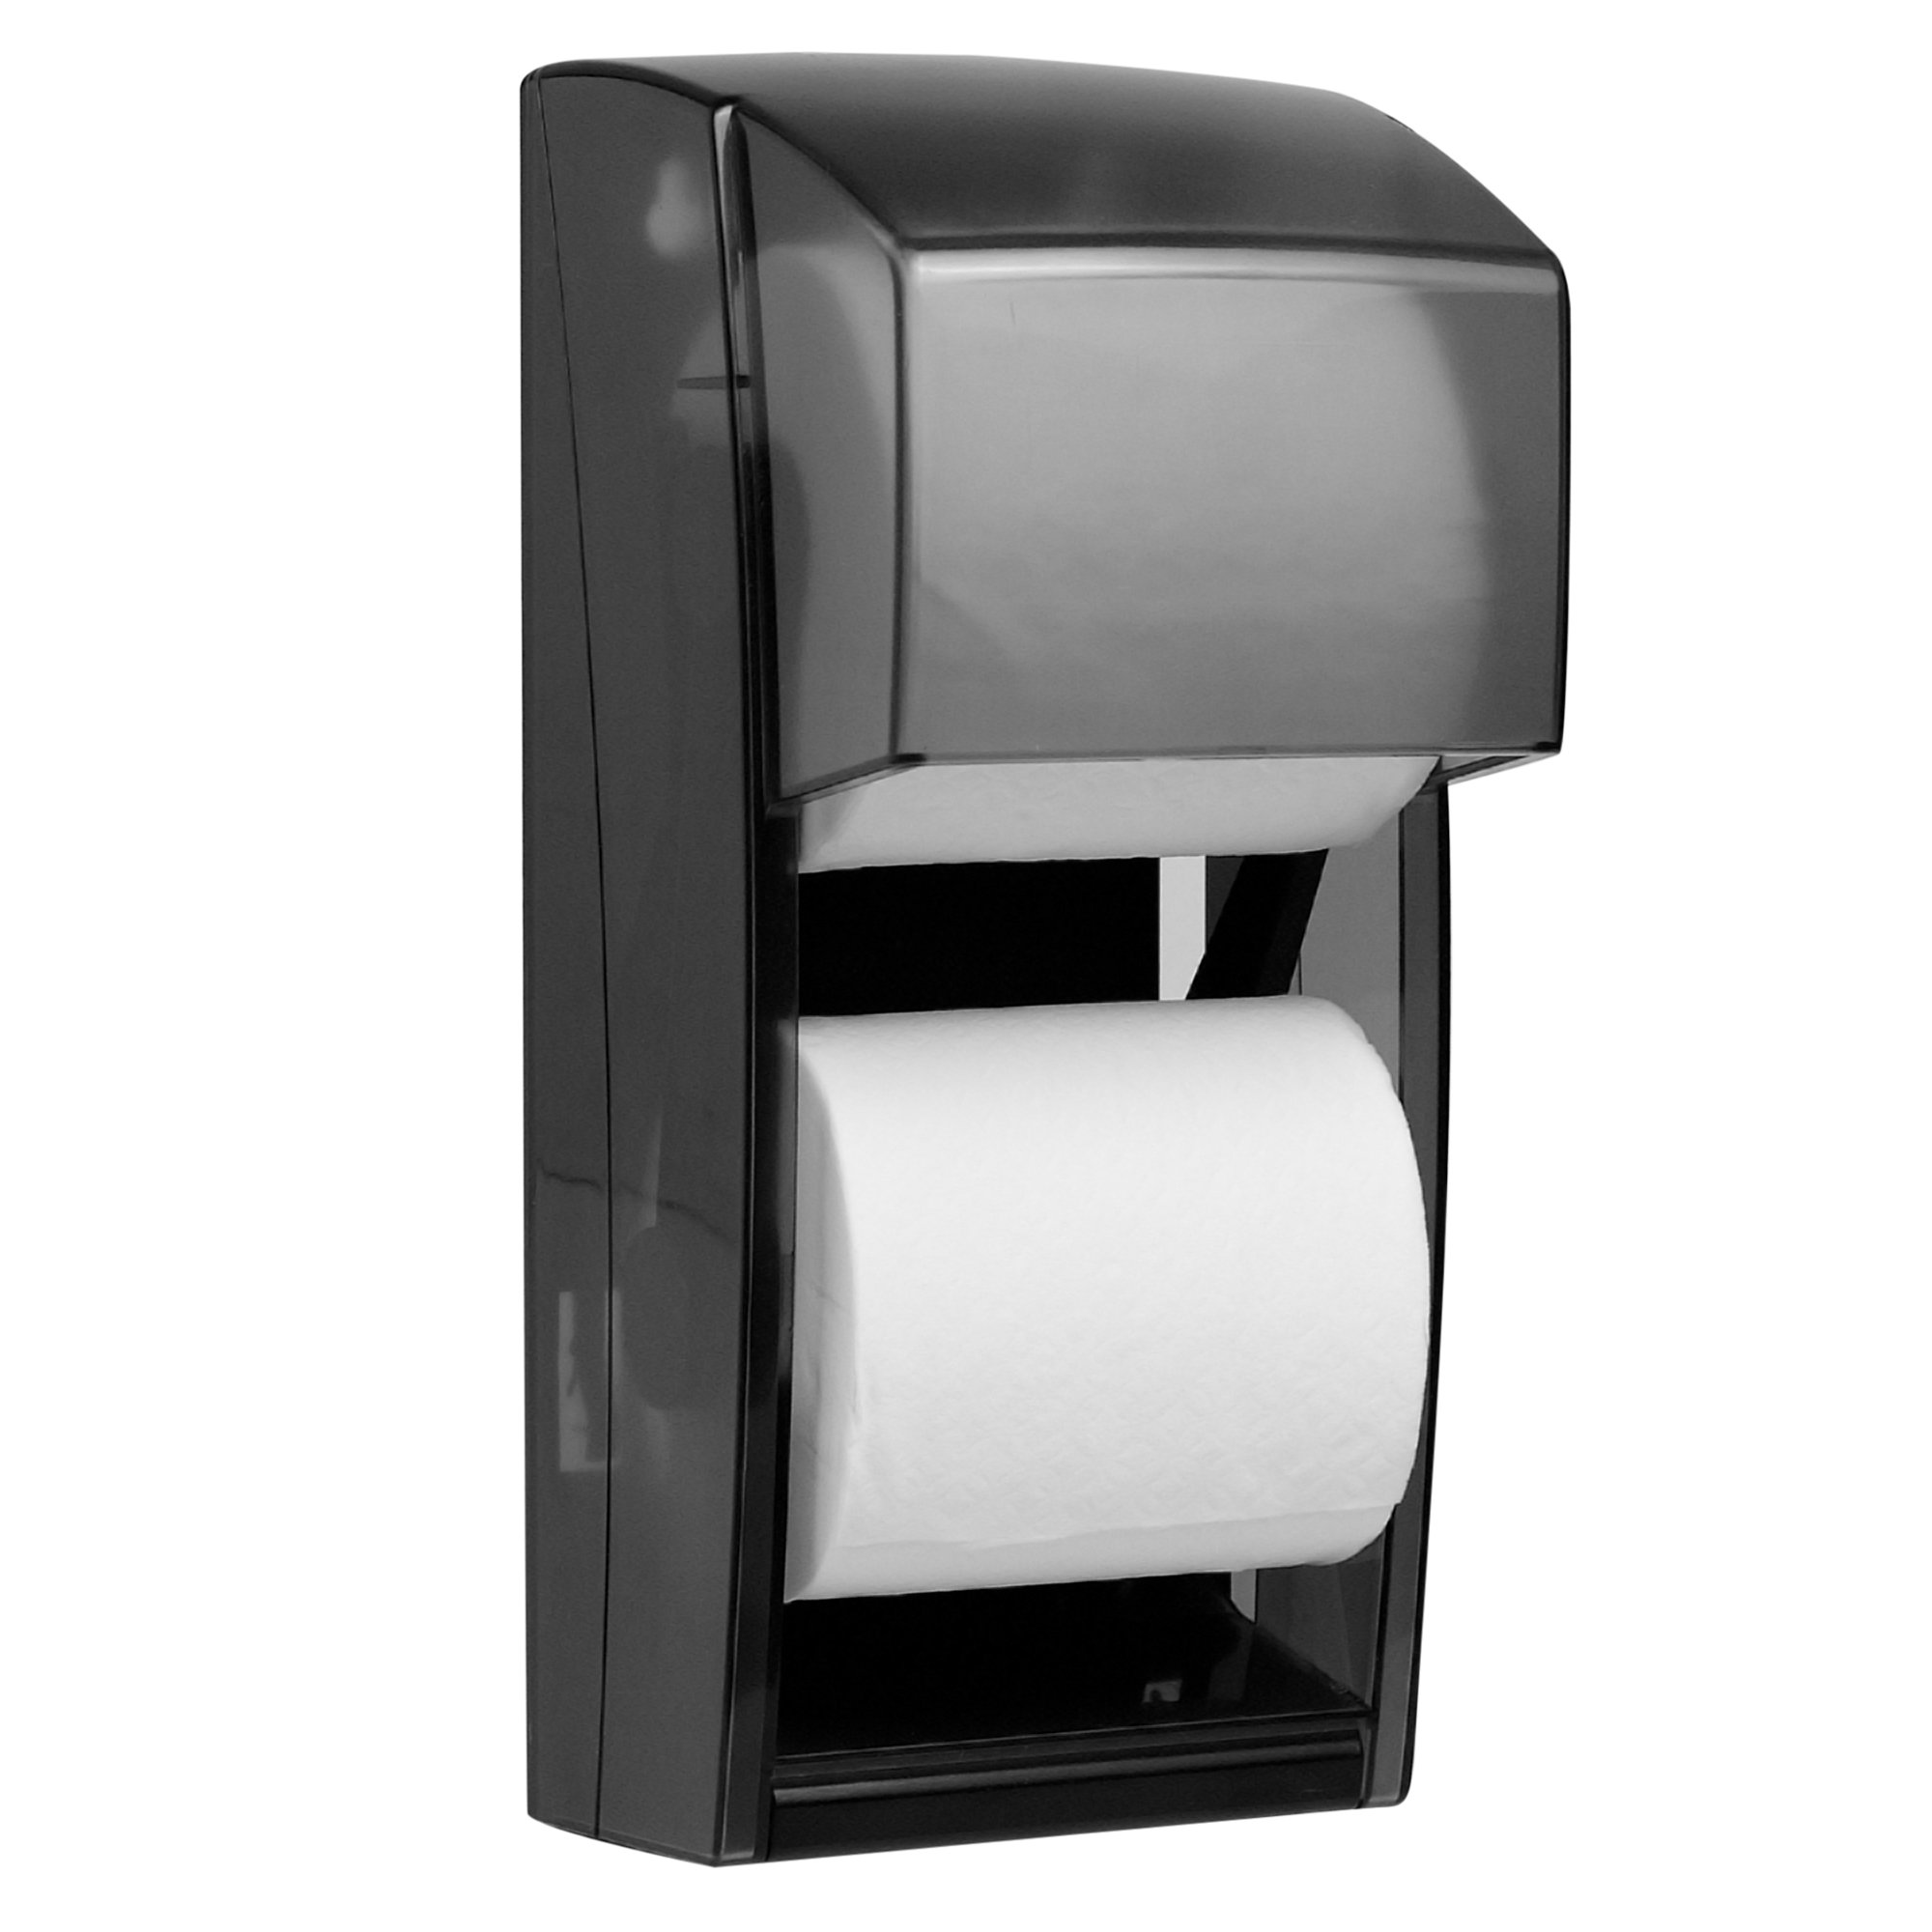 Kimberly Clark Professional Double Roll Toilet Paper Dispenser (09021), Cored or Coreless Standard Roll Compatible, Smoke (Black) by Kimberly-Clark Professional (Image #5)